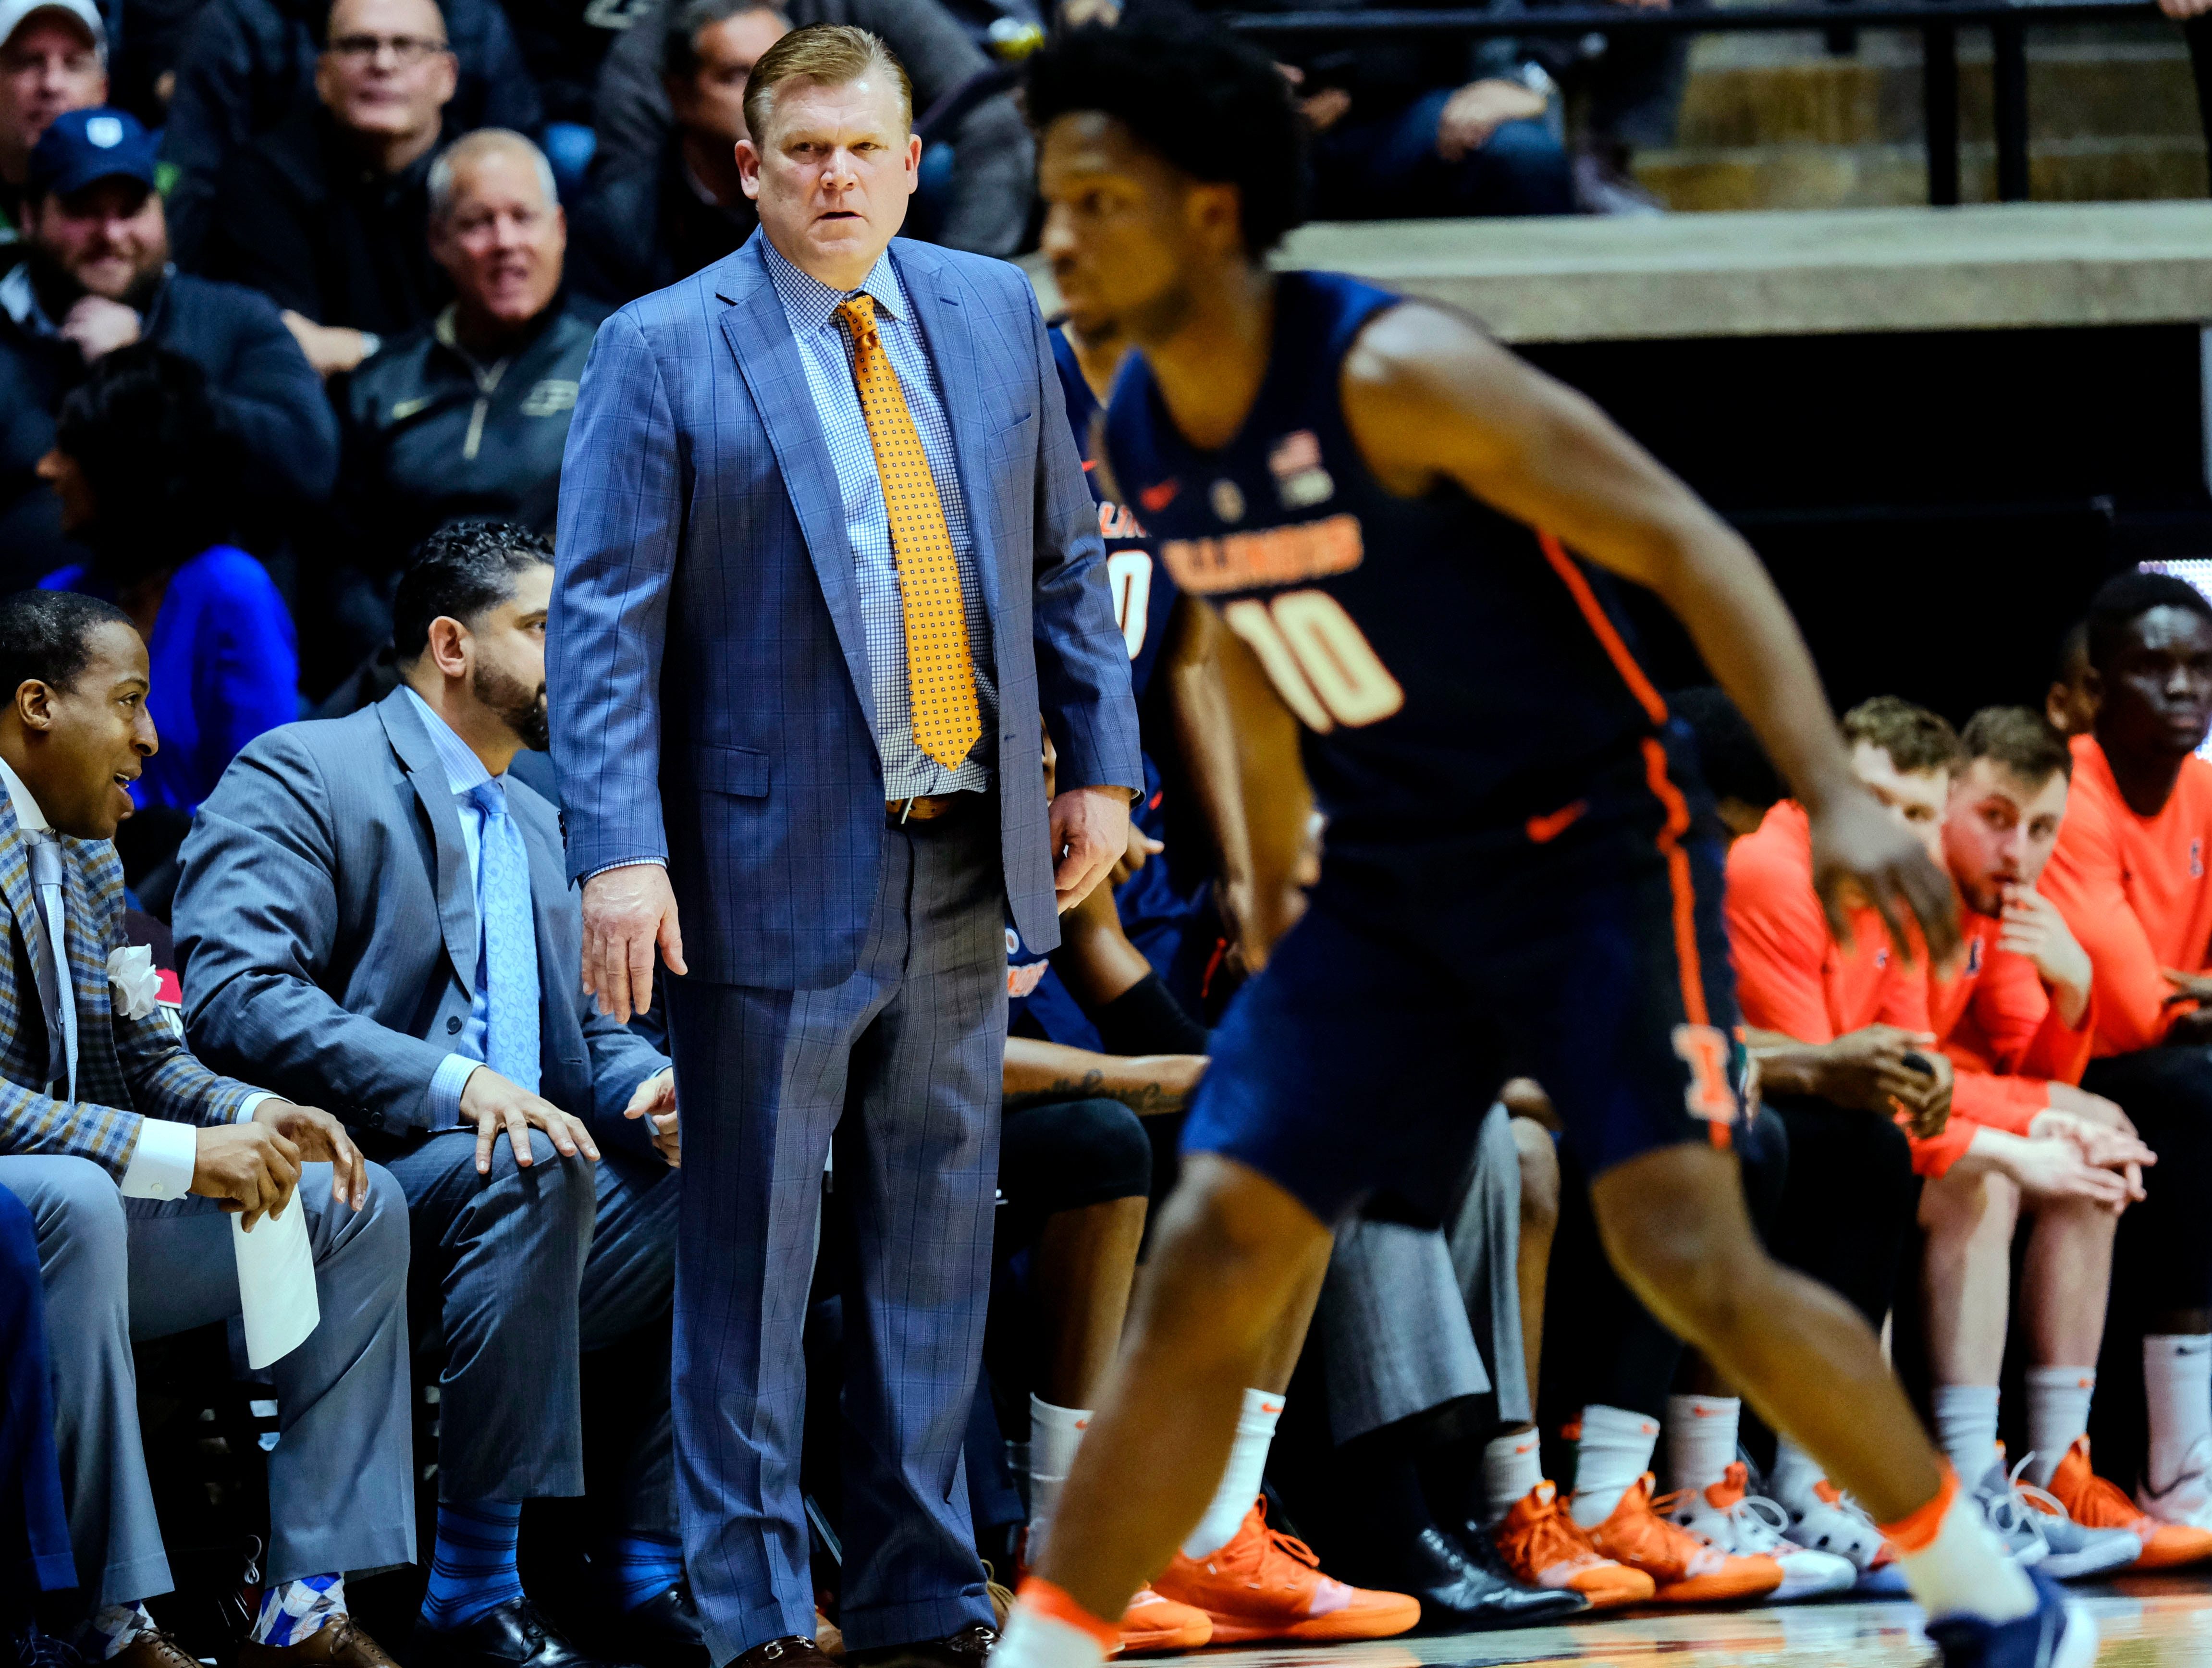 11. Illinois (11-18, 7-11) – The Fighting Illini were happy to see Northwestern on the schedule and took advantage to end a three-game skid heading into the final week of the season. They have a home game left with Indiana followed by a trip to Penn State as they do their best to avoid playing on Wednesday in the conference tournament. A win in either game should do it for Brad Underwood's team. Last week: 10.